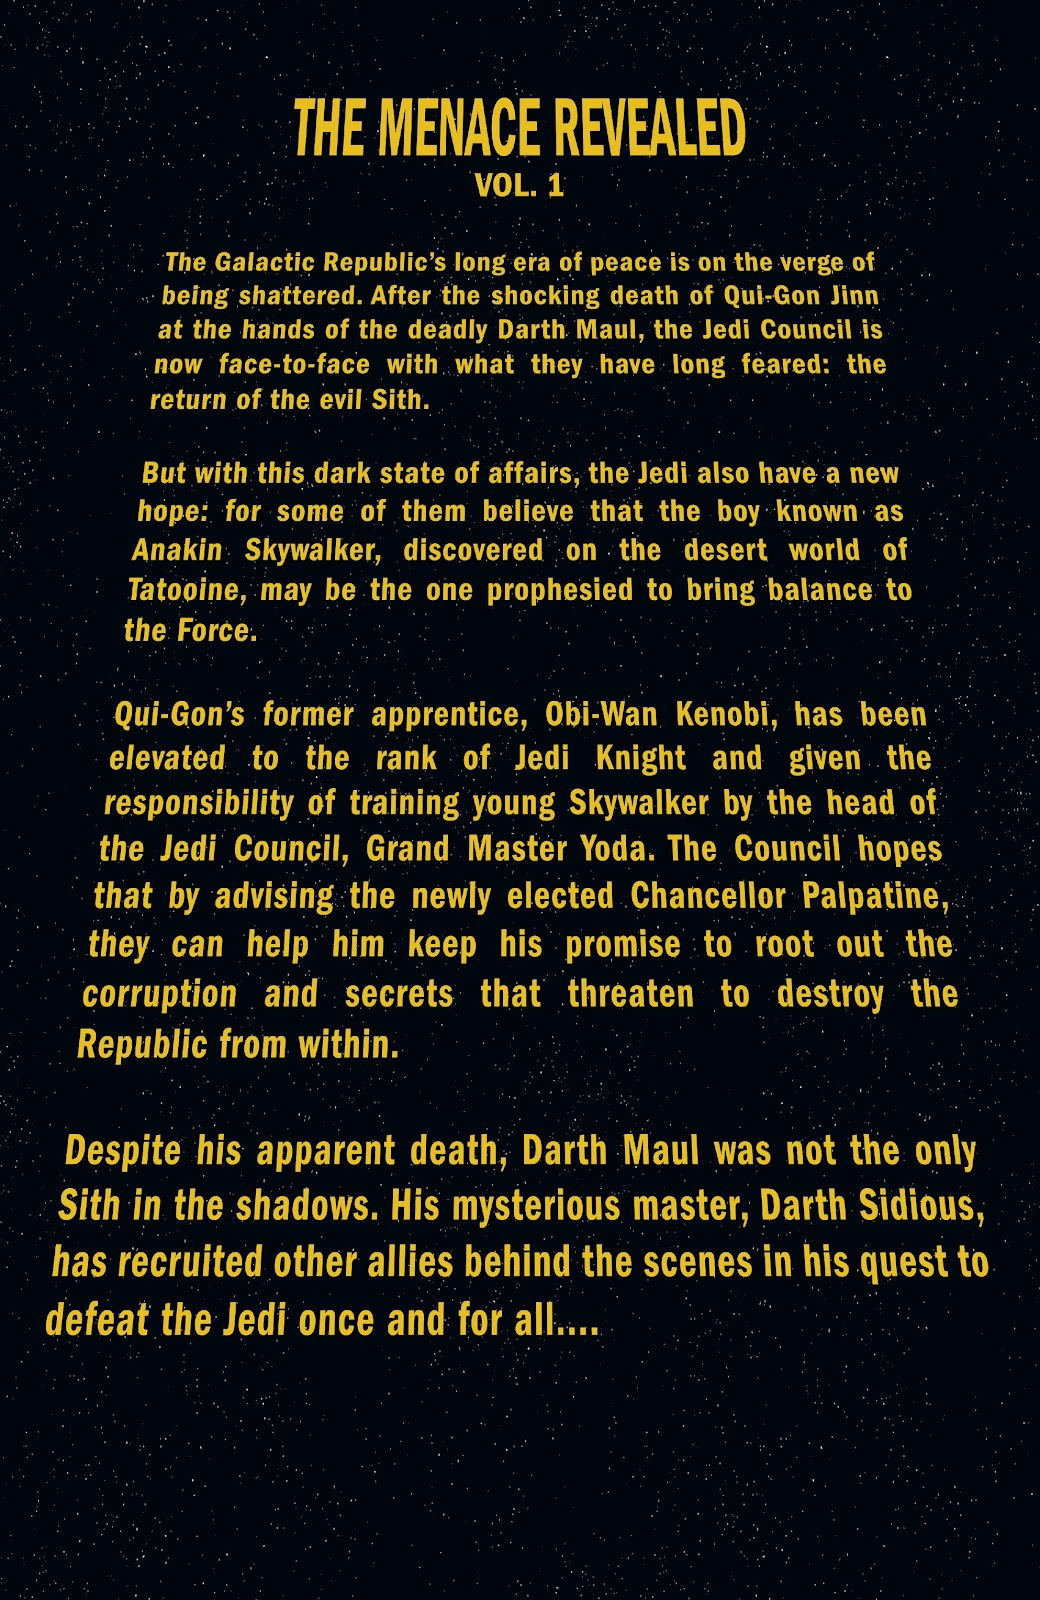 Read online Star Wars Legends Epic Collection: The Menace Revealed comic -  Issue # TPB (Part 1) - 5